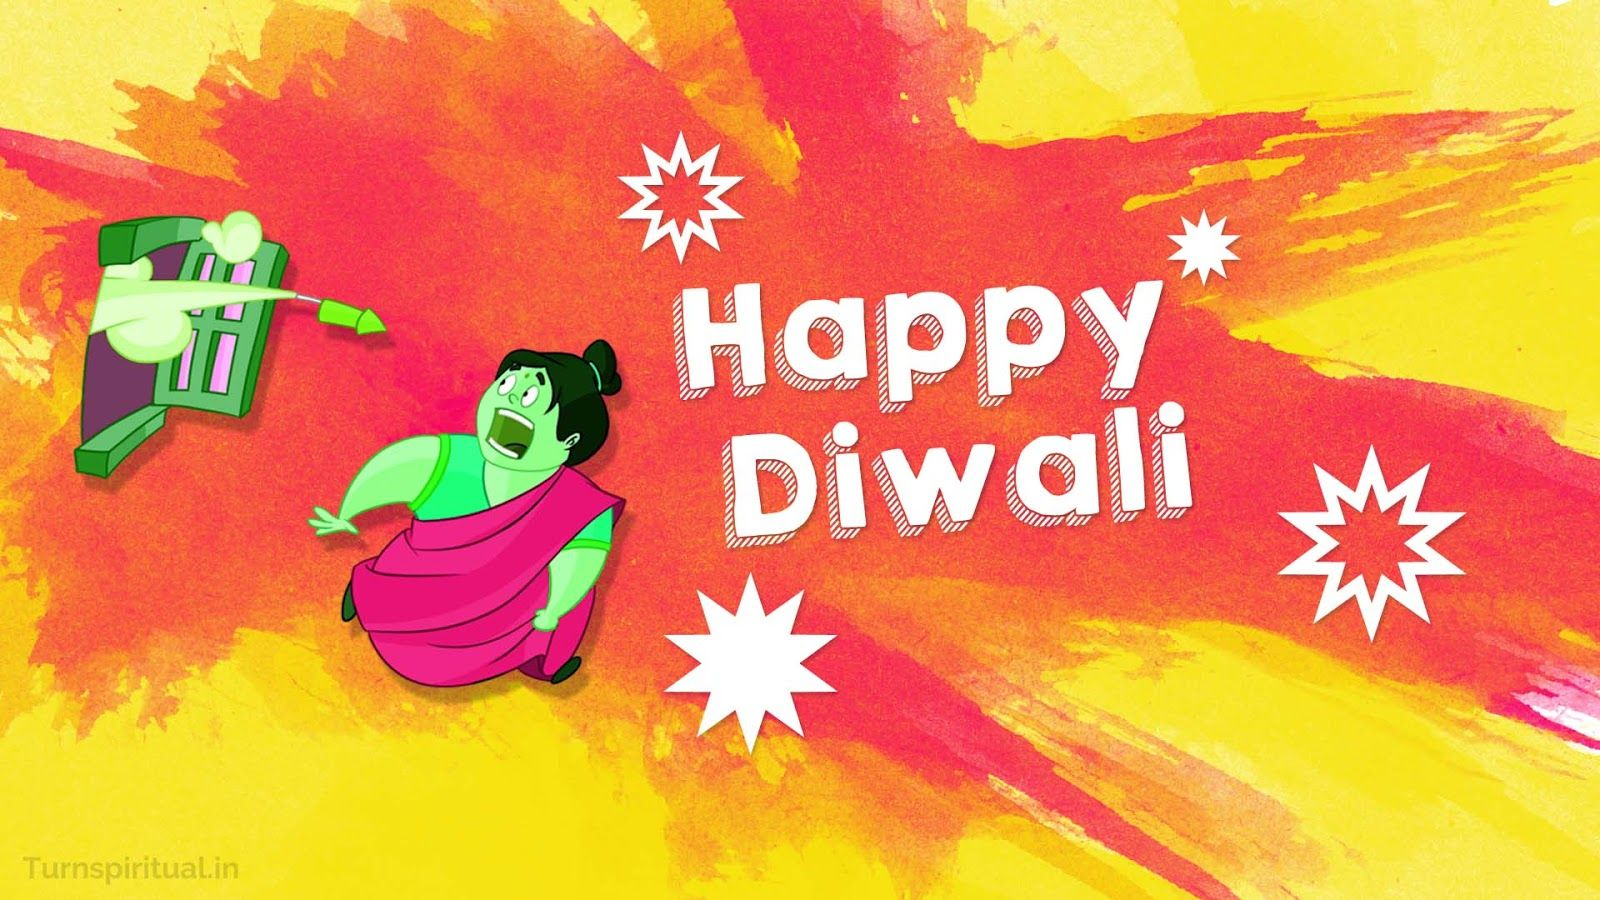 Happy diwali deepavali diwali wishes greeting cards free happy diwali deepavali diwali wishes greeting cards free hd wallpapers kristyandbryce Image collections